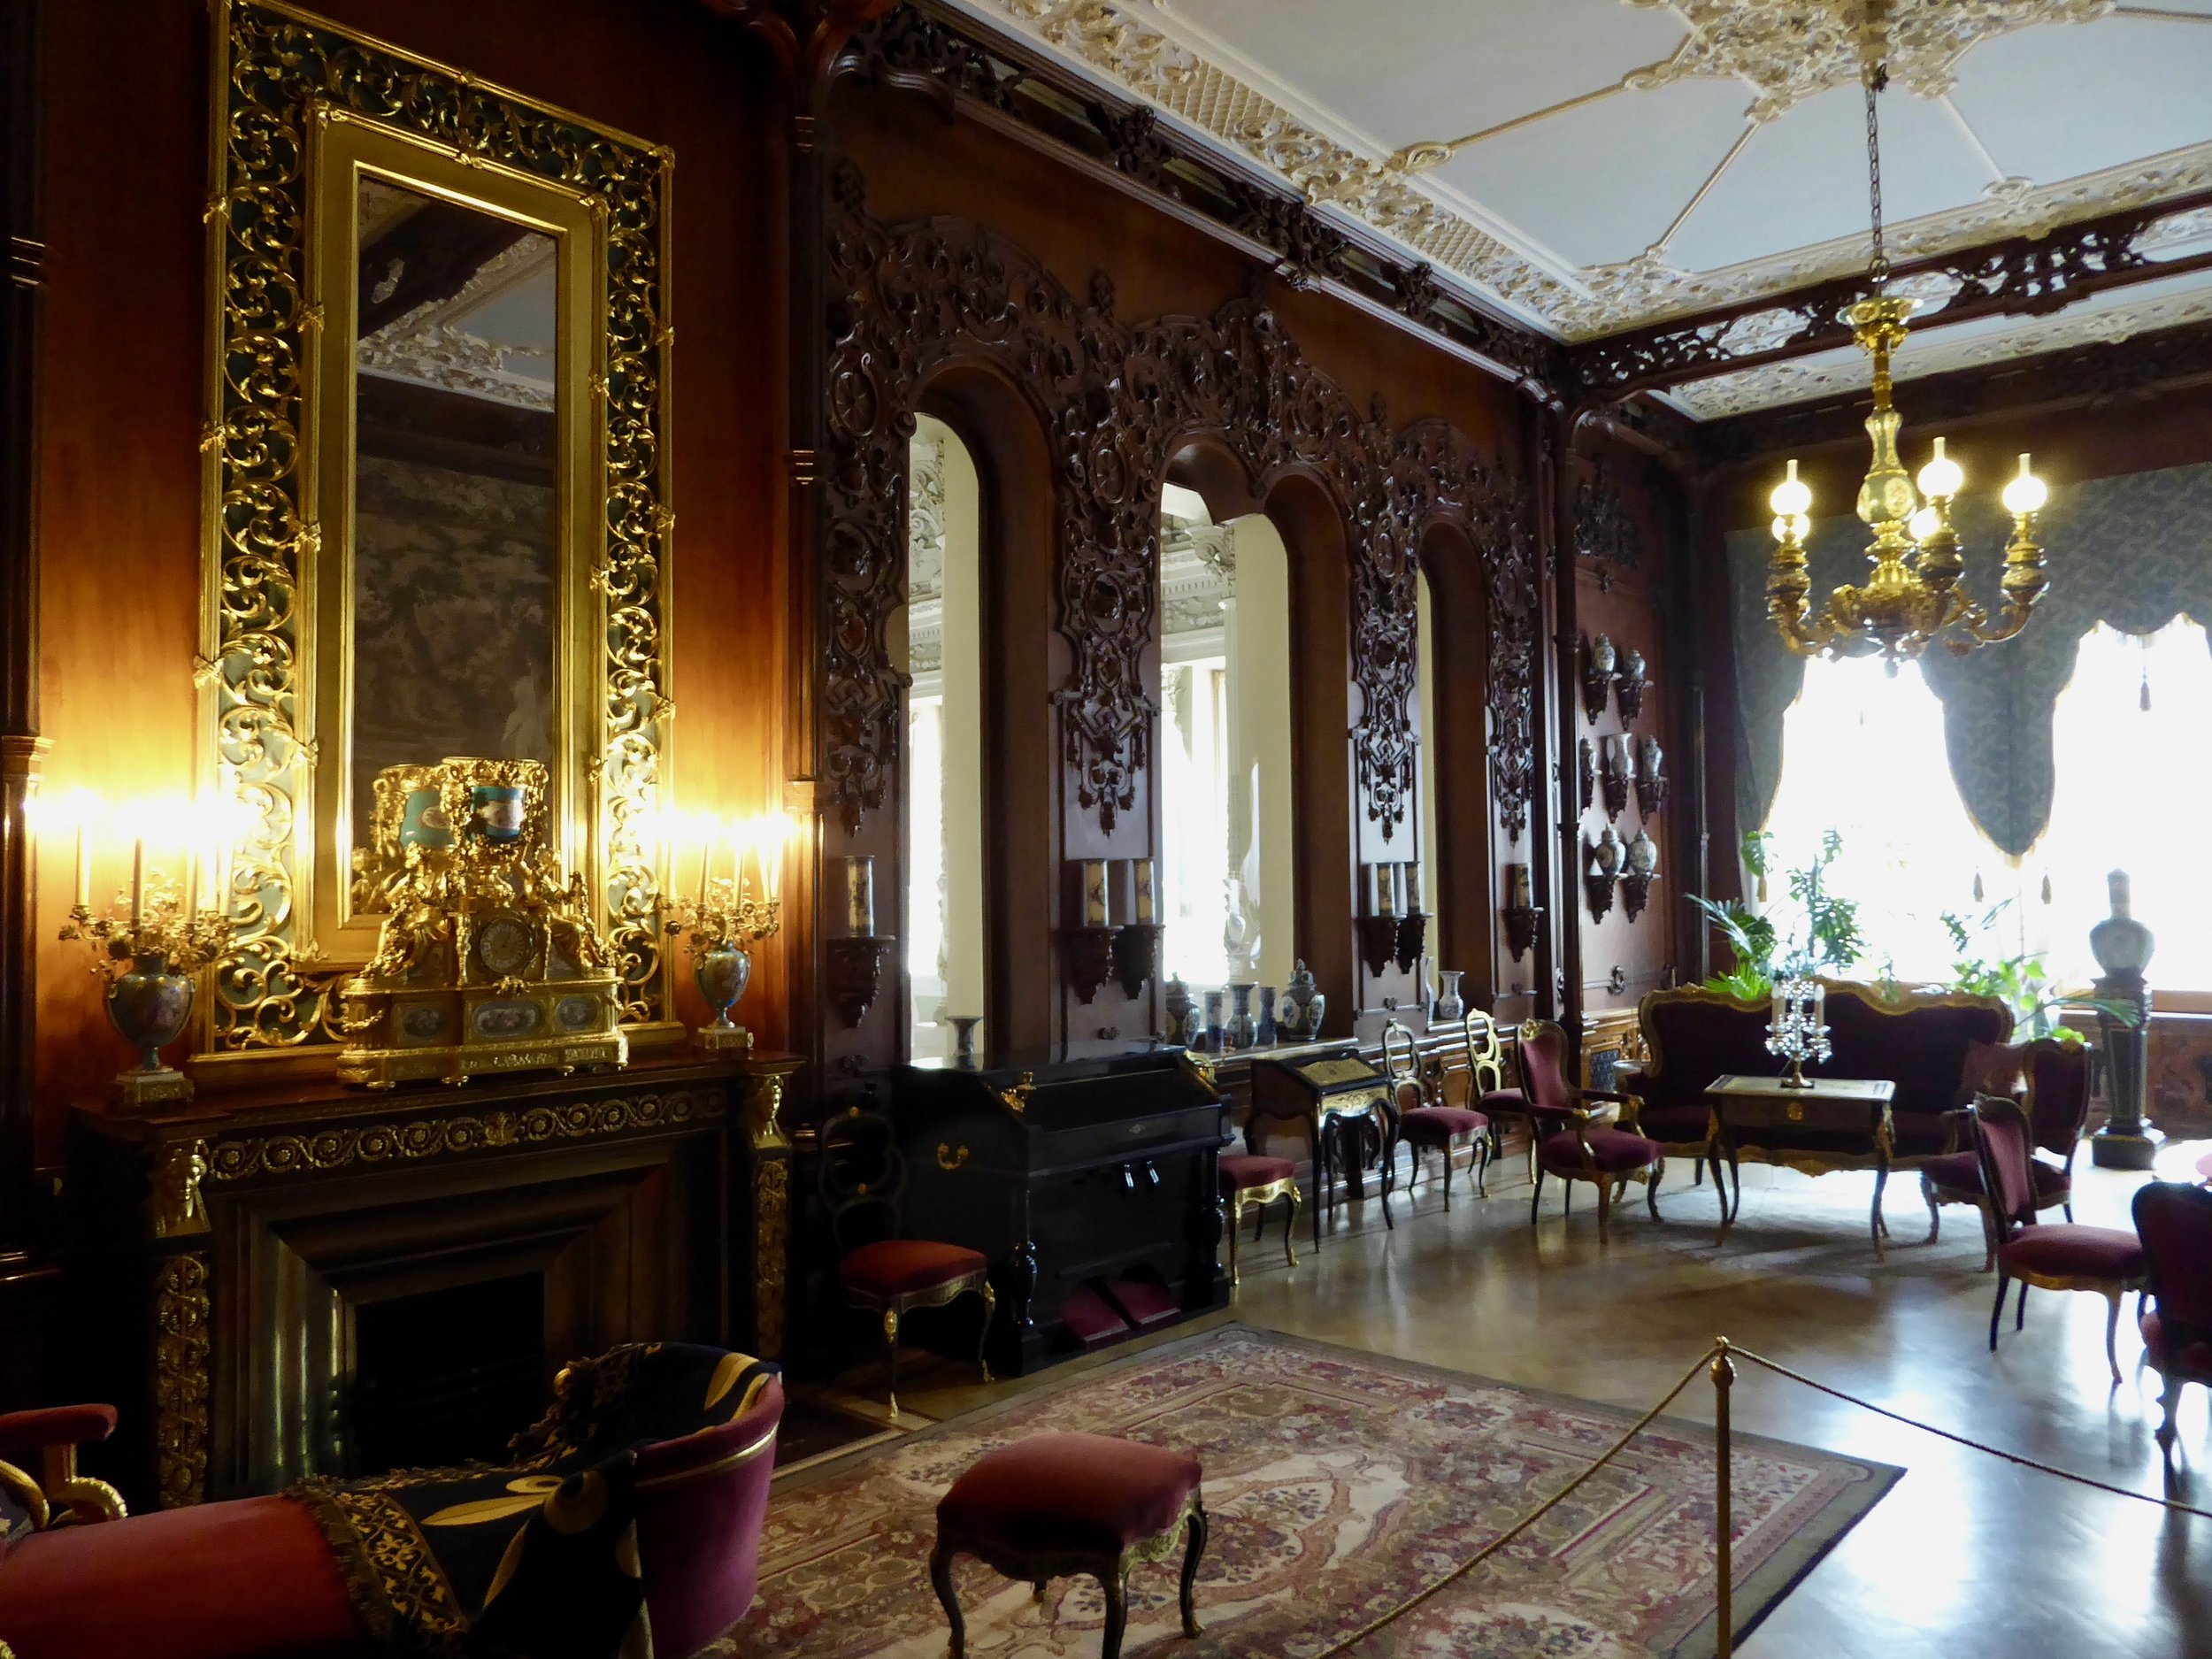 The Yusupov Palace turns out to be one of our favorites.